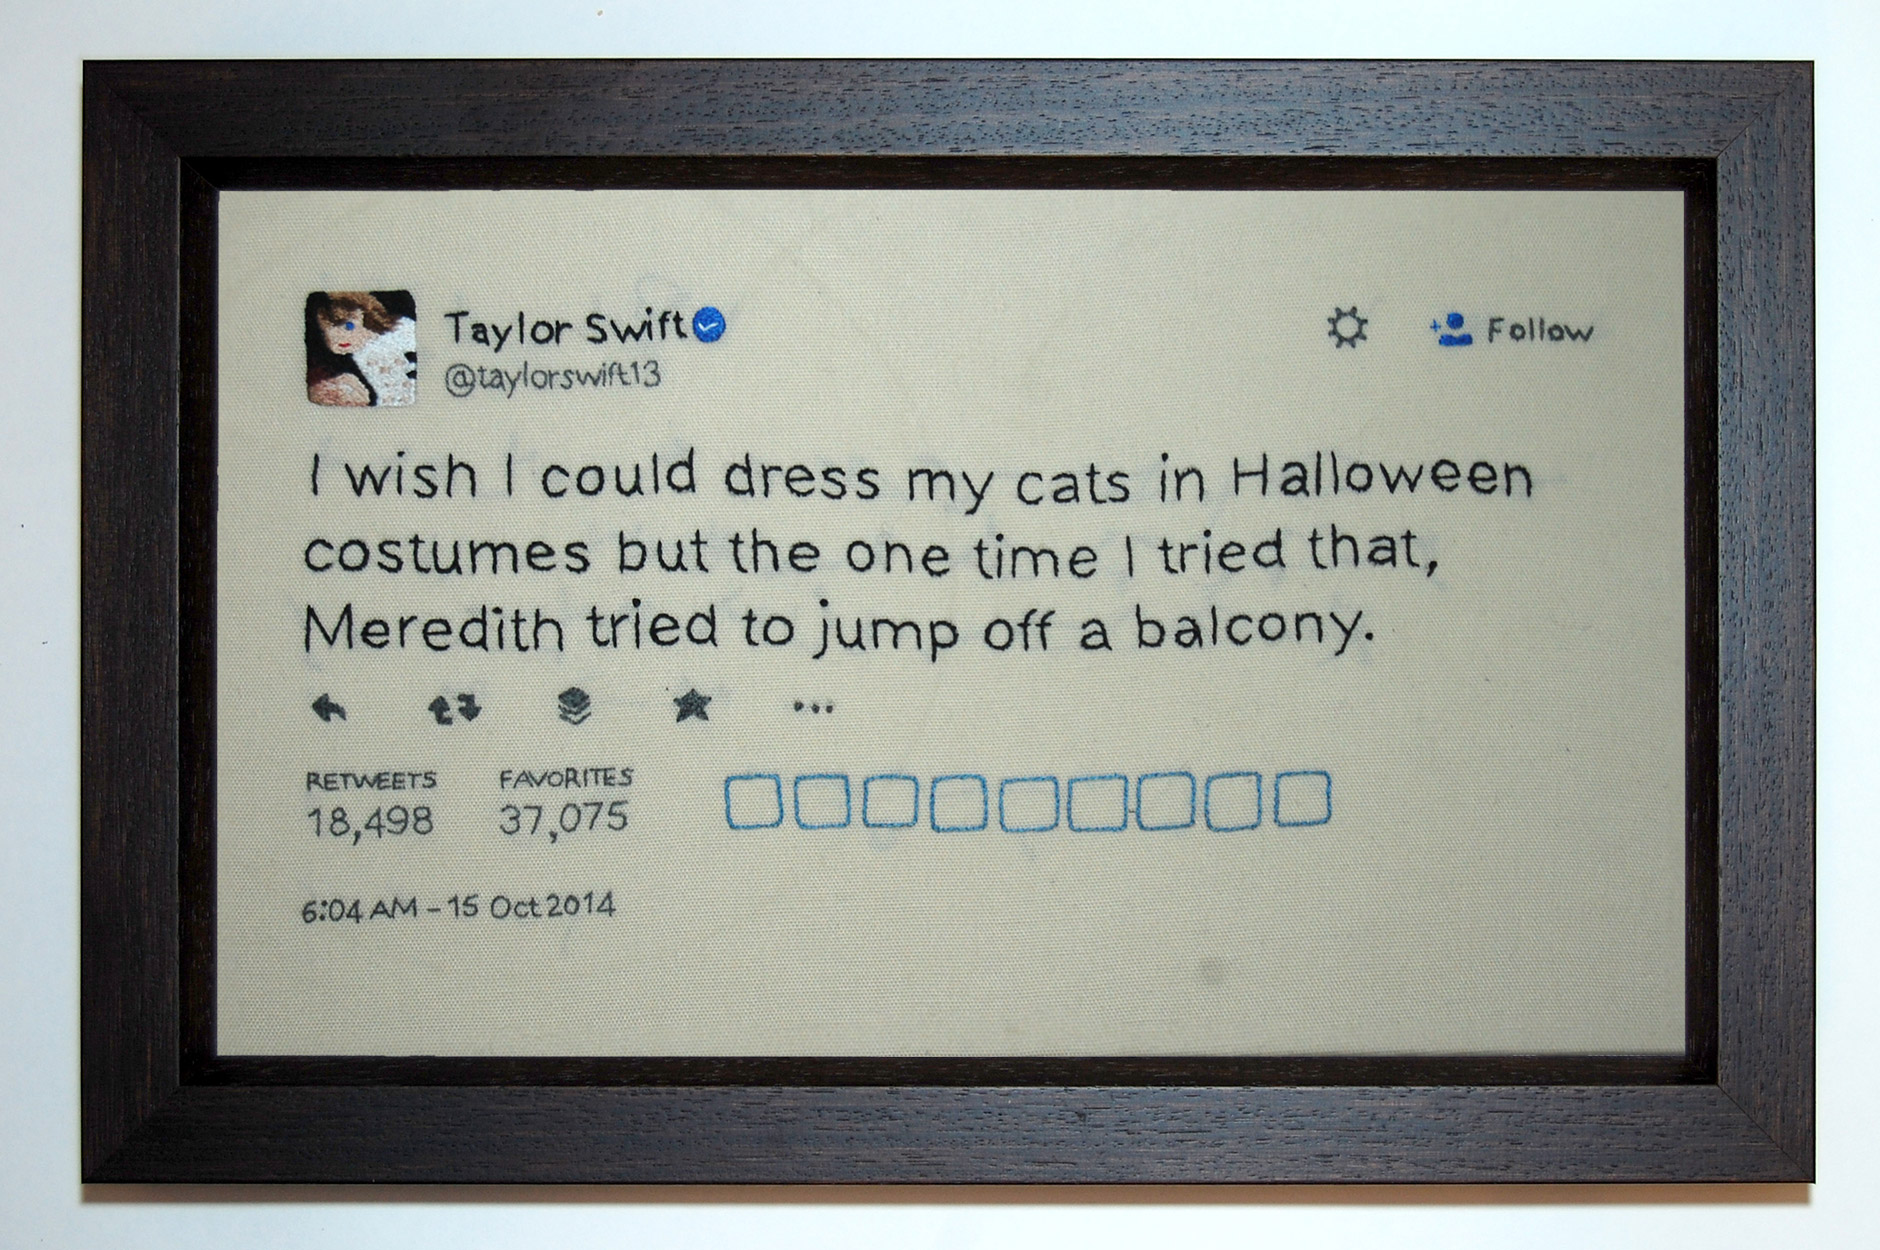 Taylor Swift 1989 Tweets Hand Embroidered